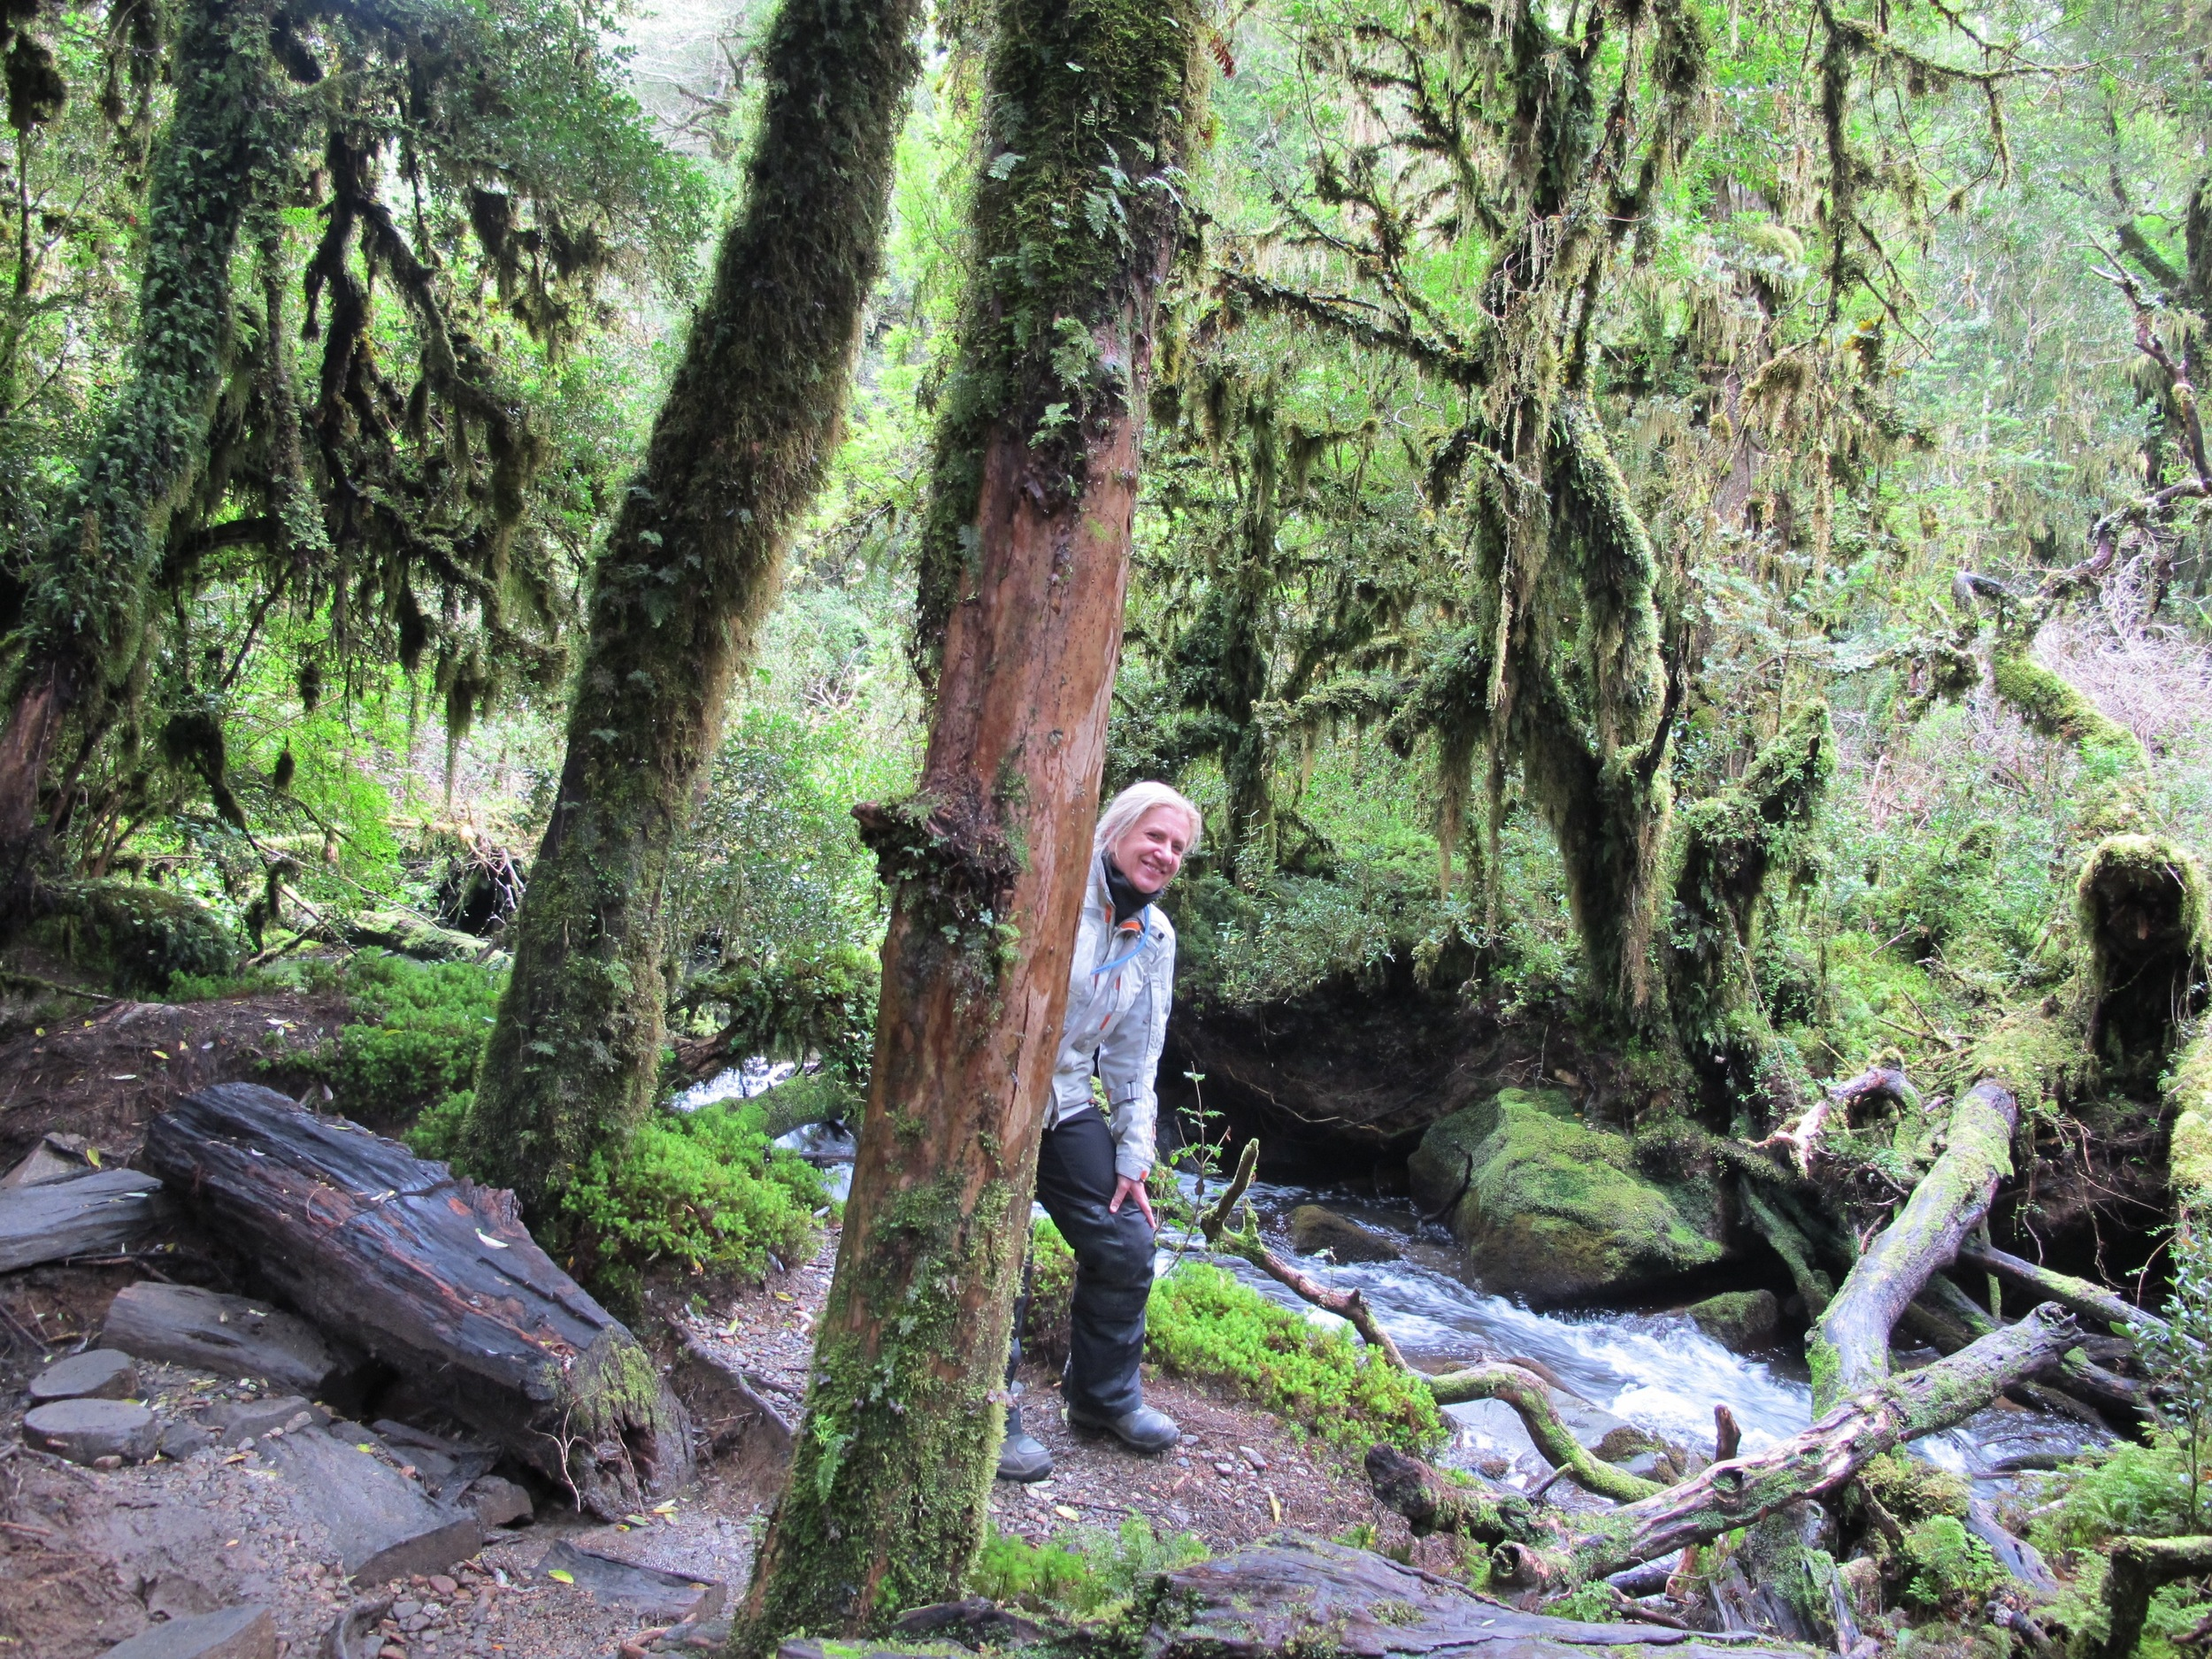 Enchanted forest walk, Carretera Austral, Chile